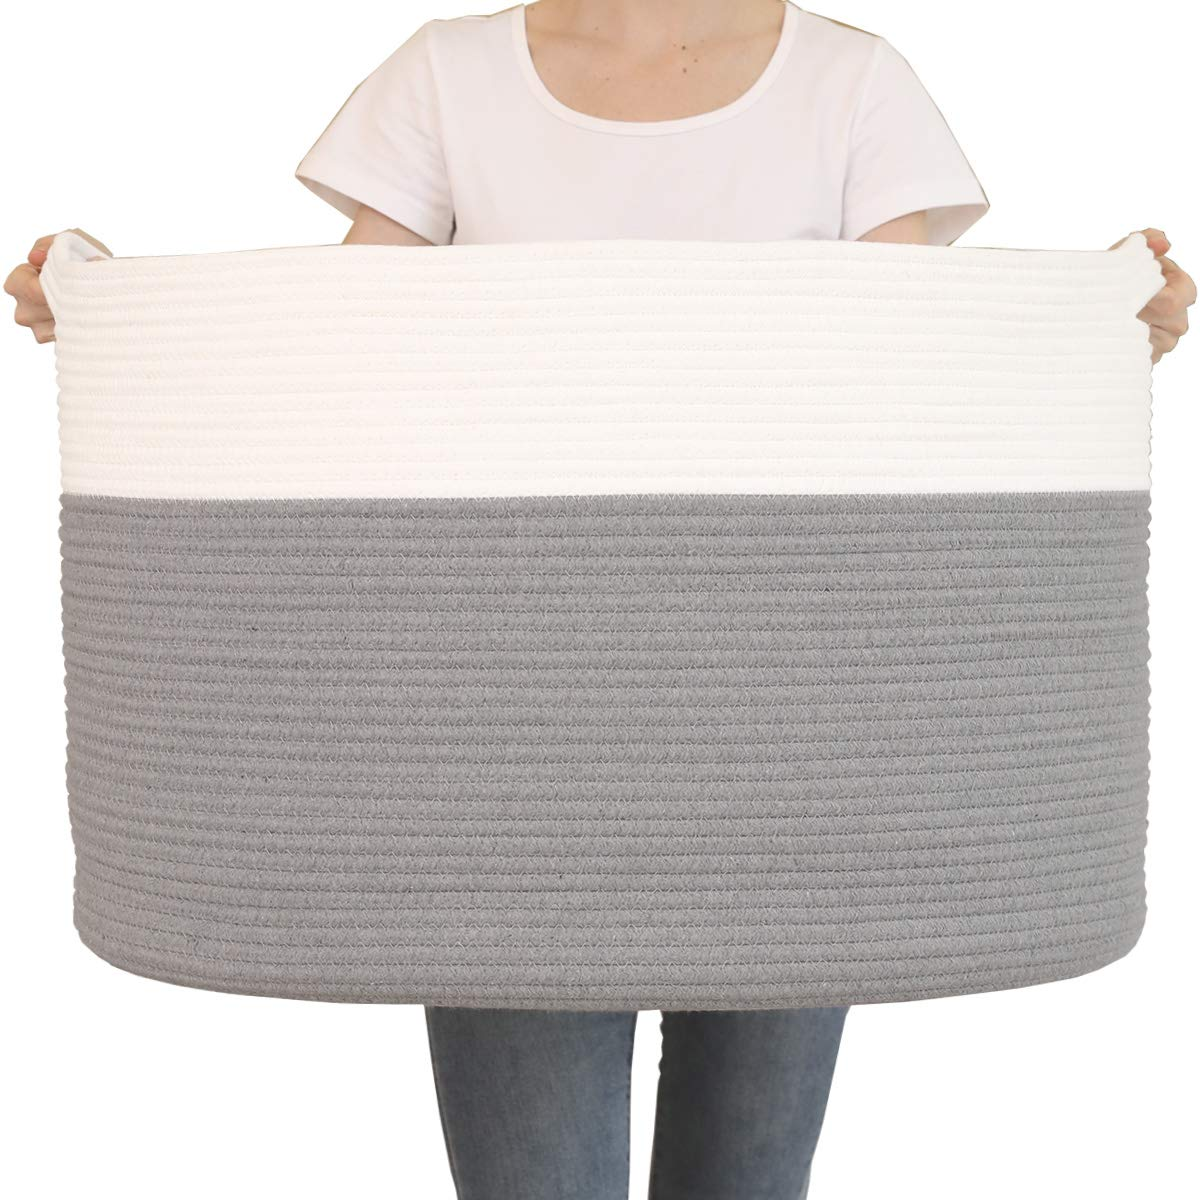 """24"""" x 24"""" x 17"""" Max Size Large Cotton Rope Basket, Extra Large Storage Basket, Woven Laundry Hamper, Toy Storage Bin, for Blankets Clothes Toys Towels Pillows in Living Room, Baby Nursery, Grey"""